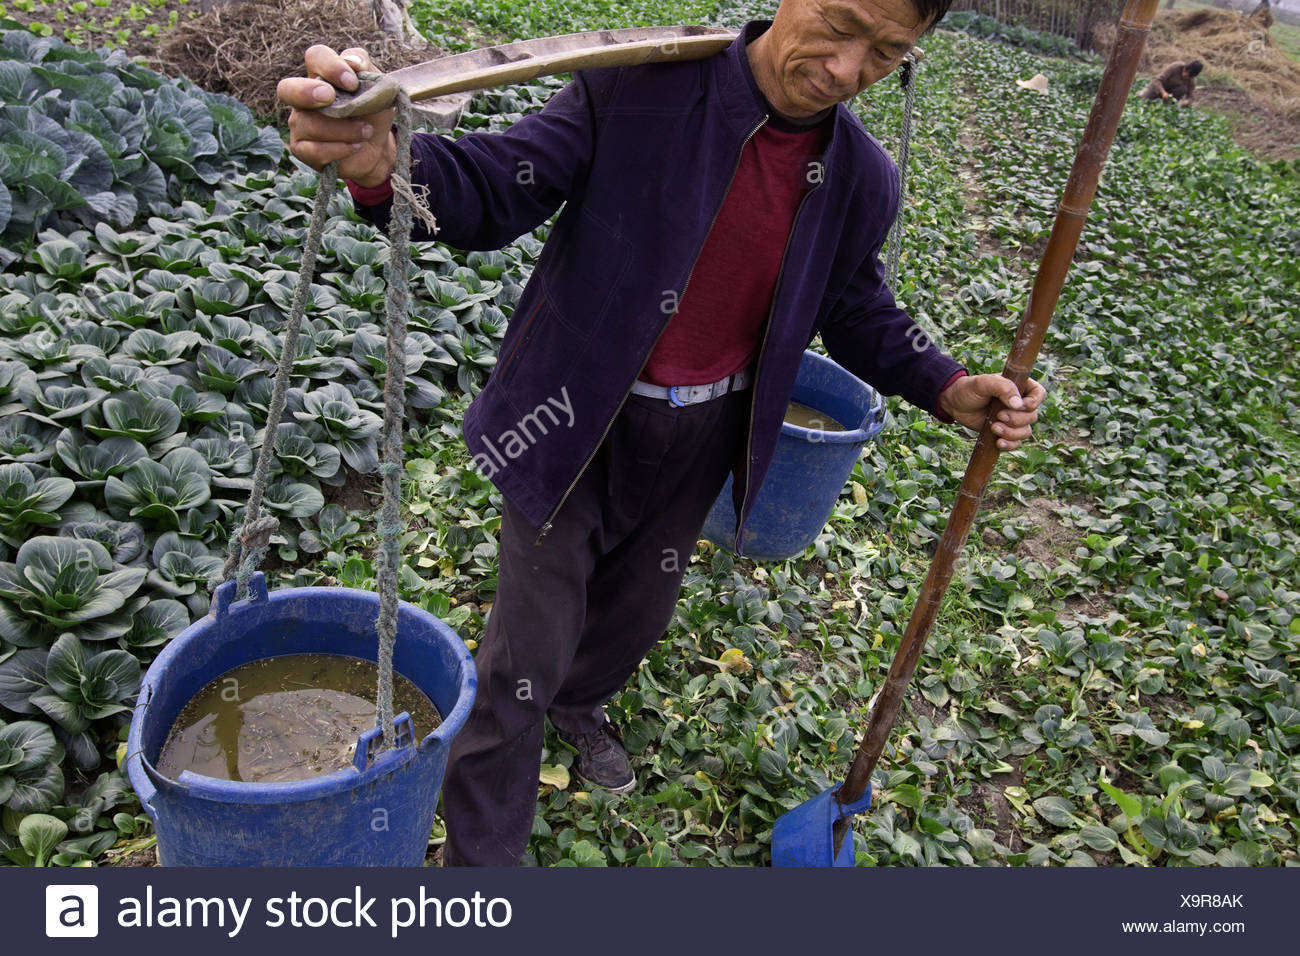 Farmer grows vegetables (mostly cabbage)using human waste for fertilizer in Changshu, China. - Stock Image